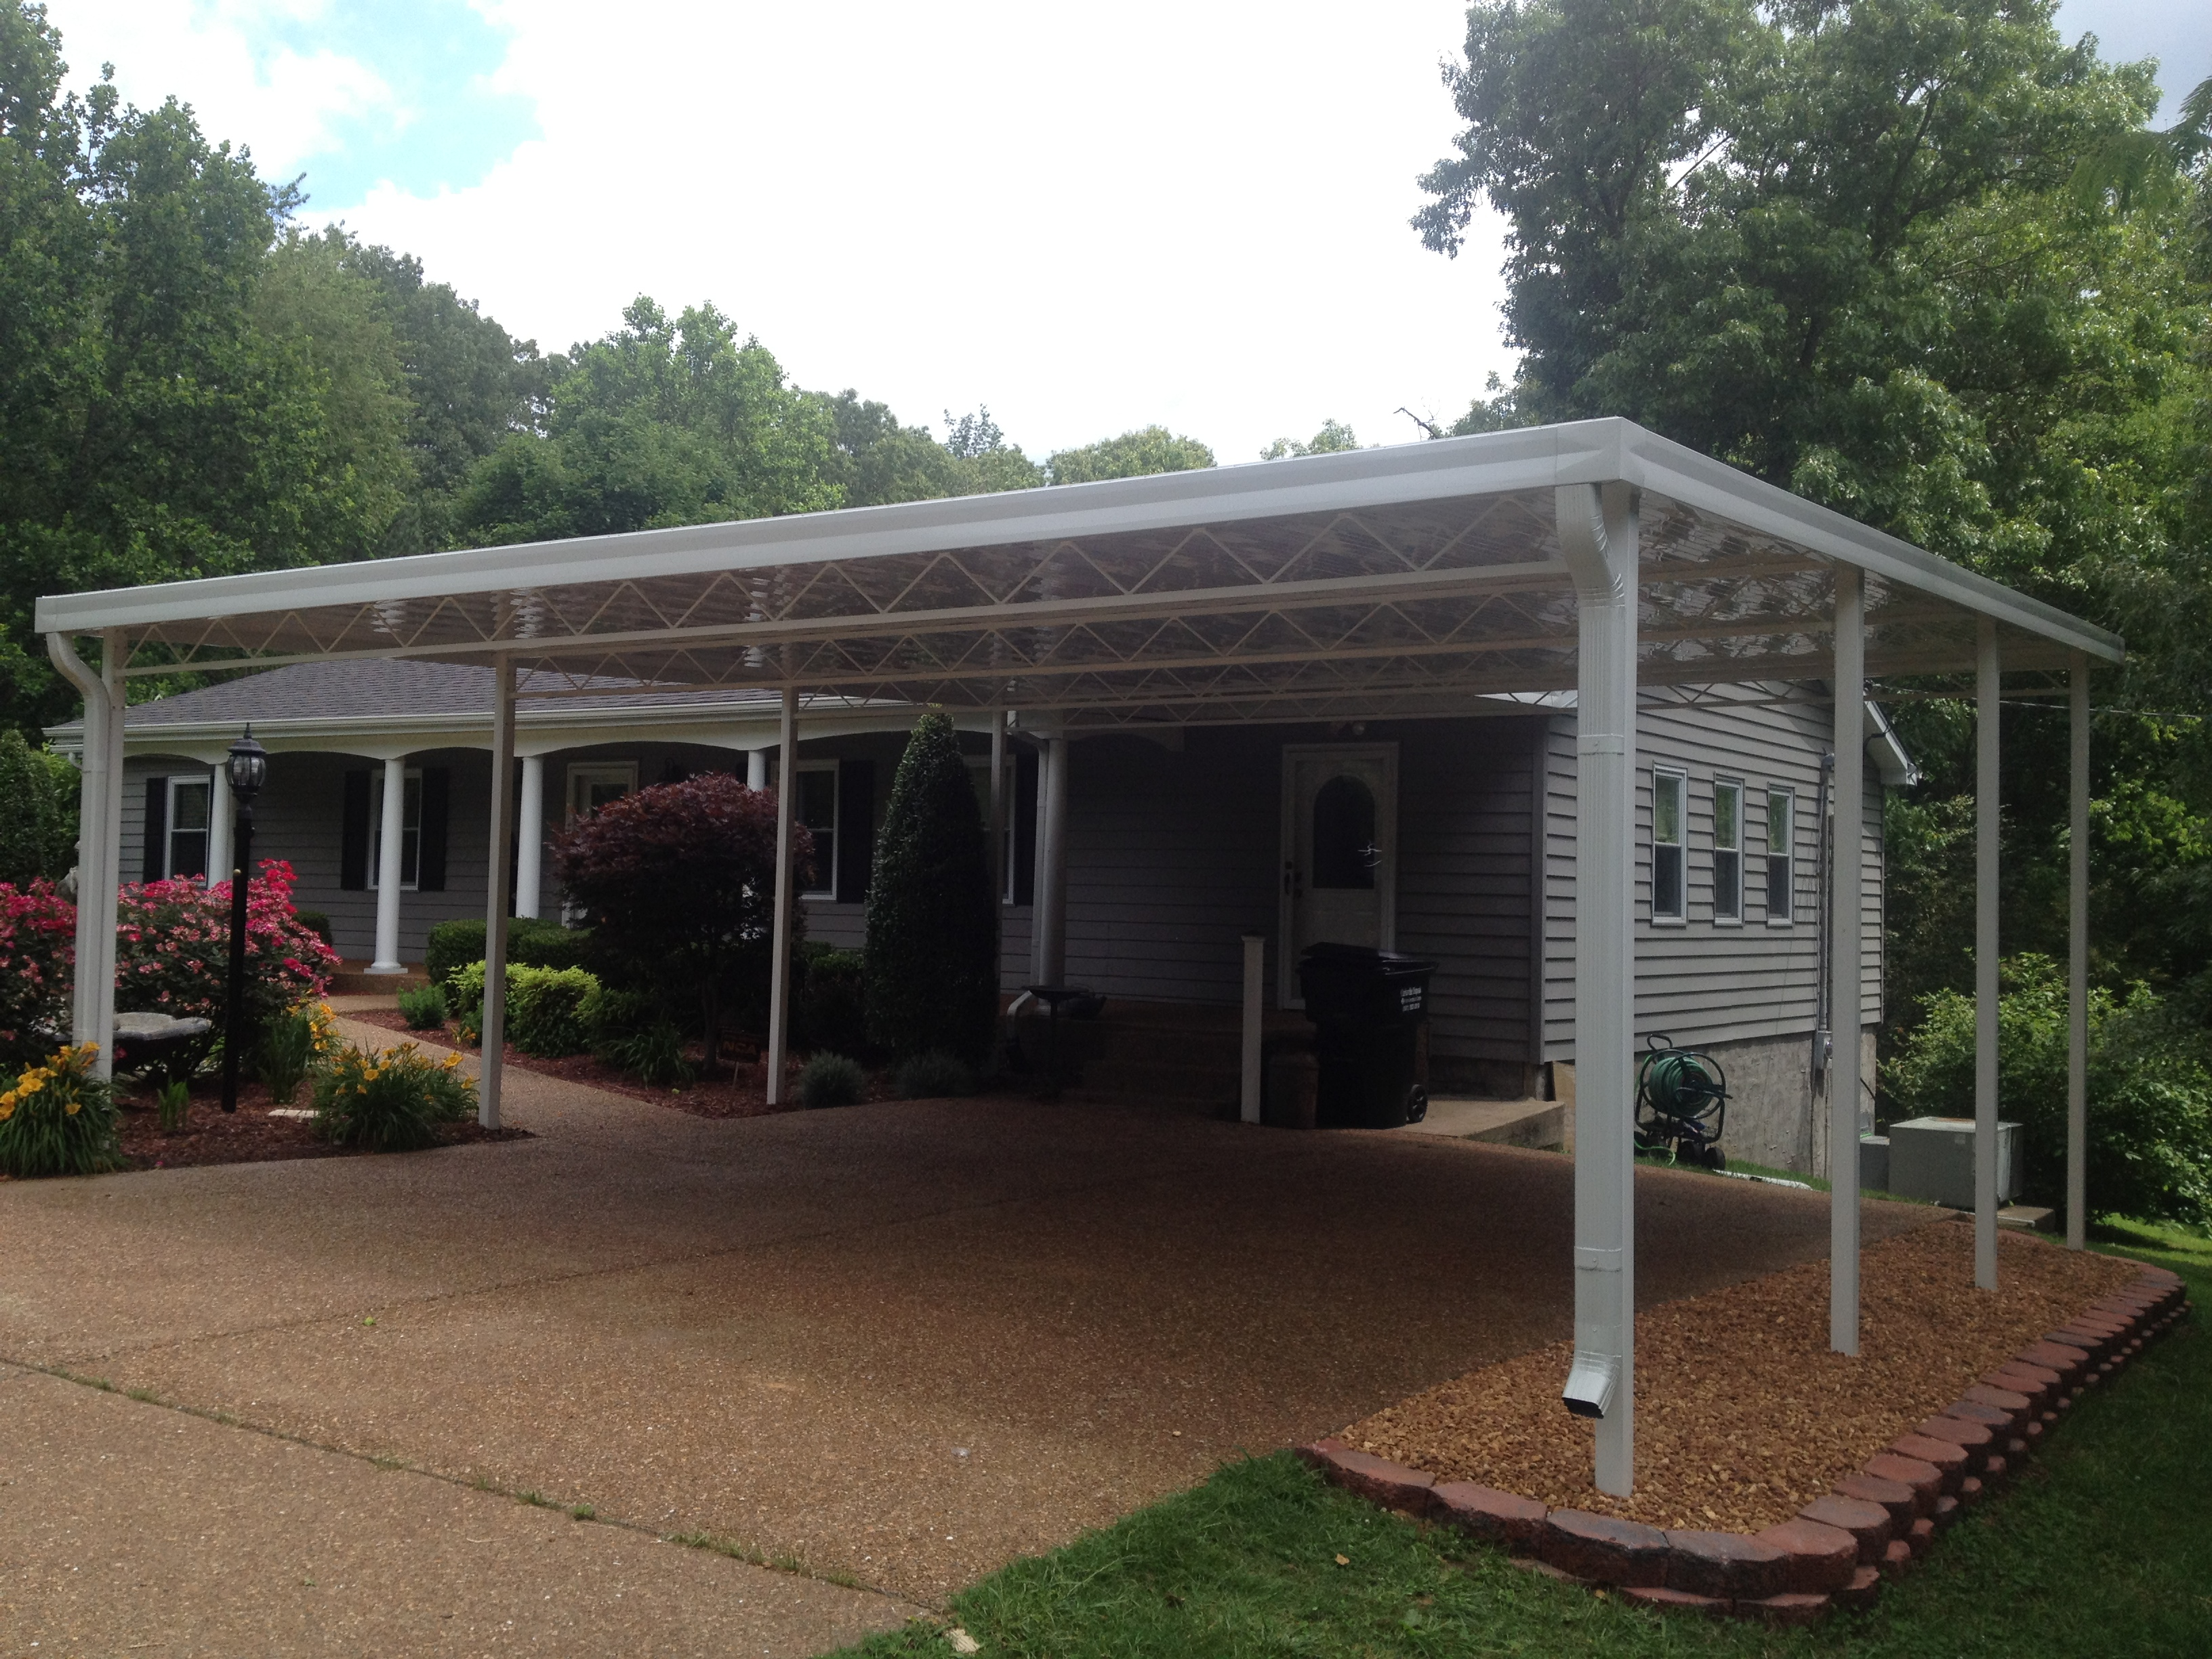 Awnings canopies over tn 931 980 9314 info for Carport deck